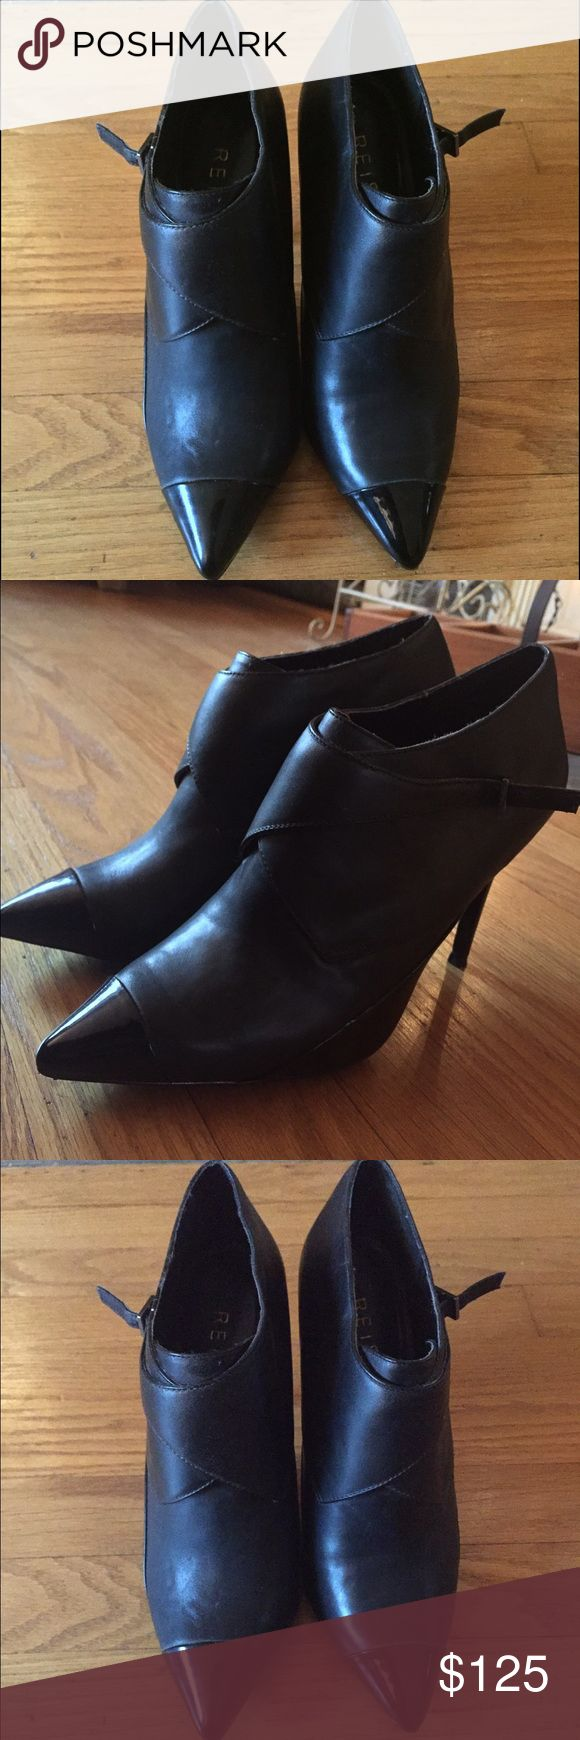 Black leather Reiss booties w/patent leather toe Black leather Reiss booties worn once with patent leather heel and toe Reiss Shoes Ankle Boots & Booties